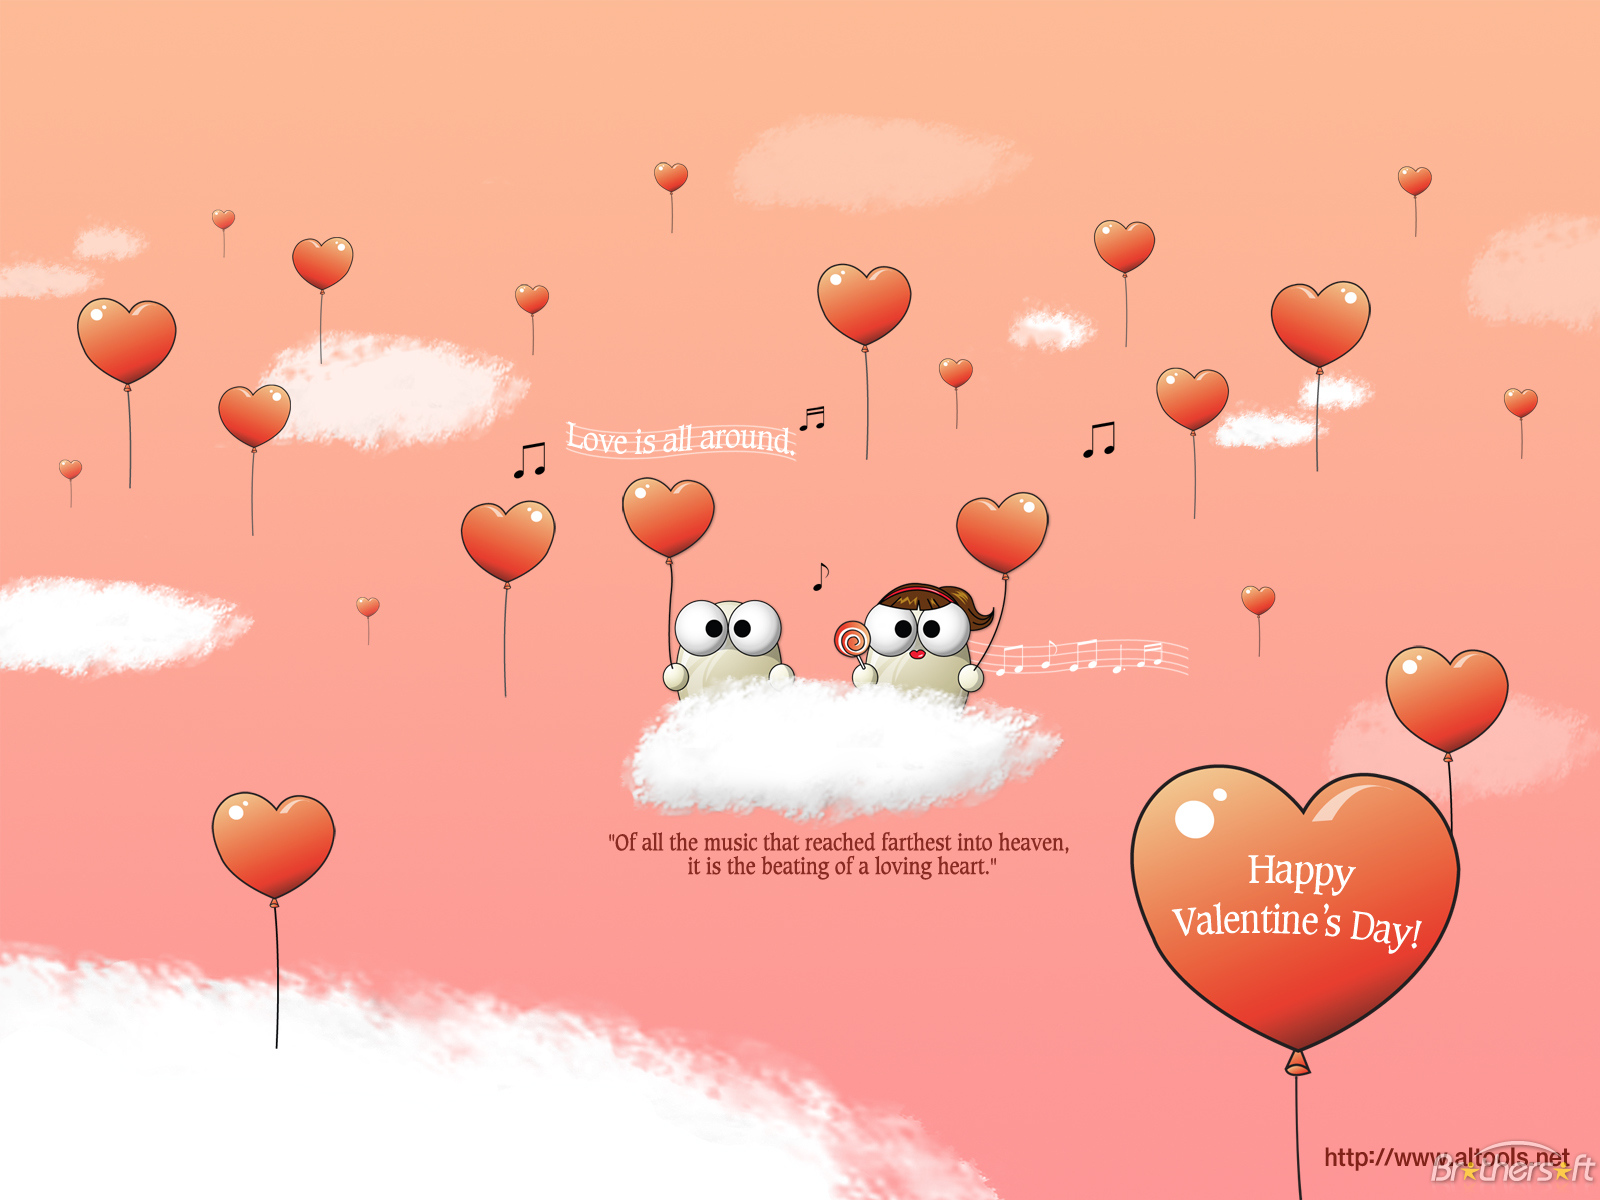 valentines day wallpaper 12 valentines day wallpaper 13 valentines day 1600x1200